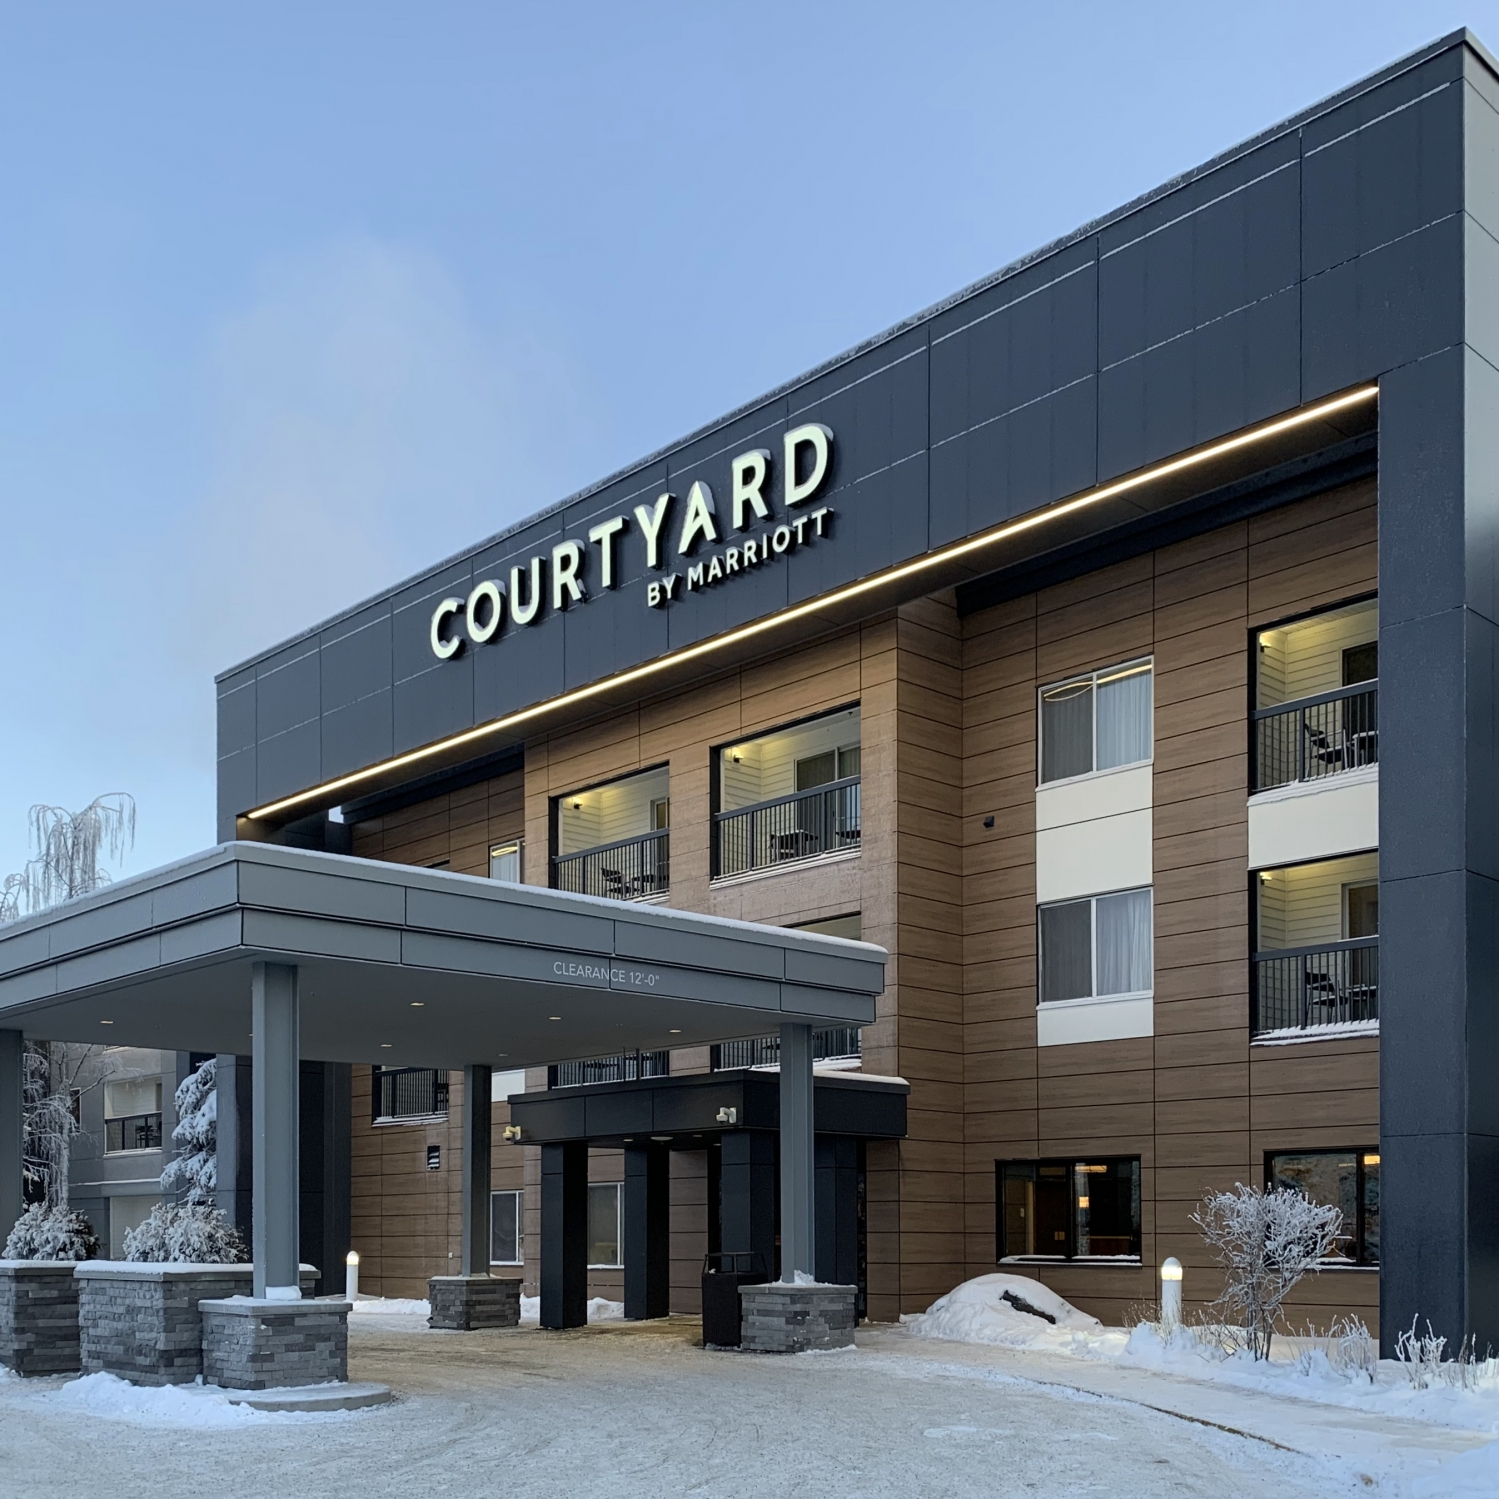 Courtyard Marriott JLMC